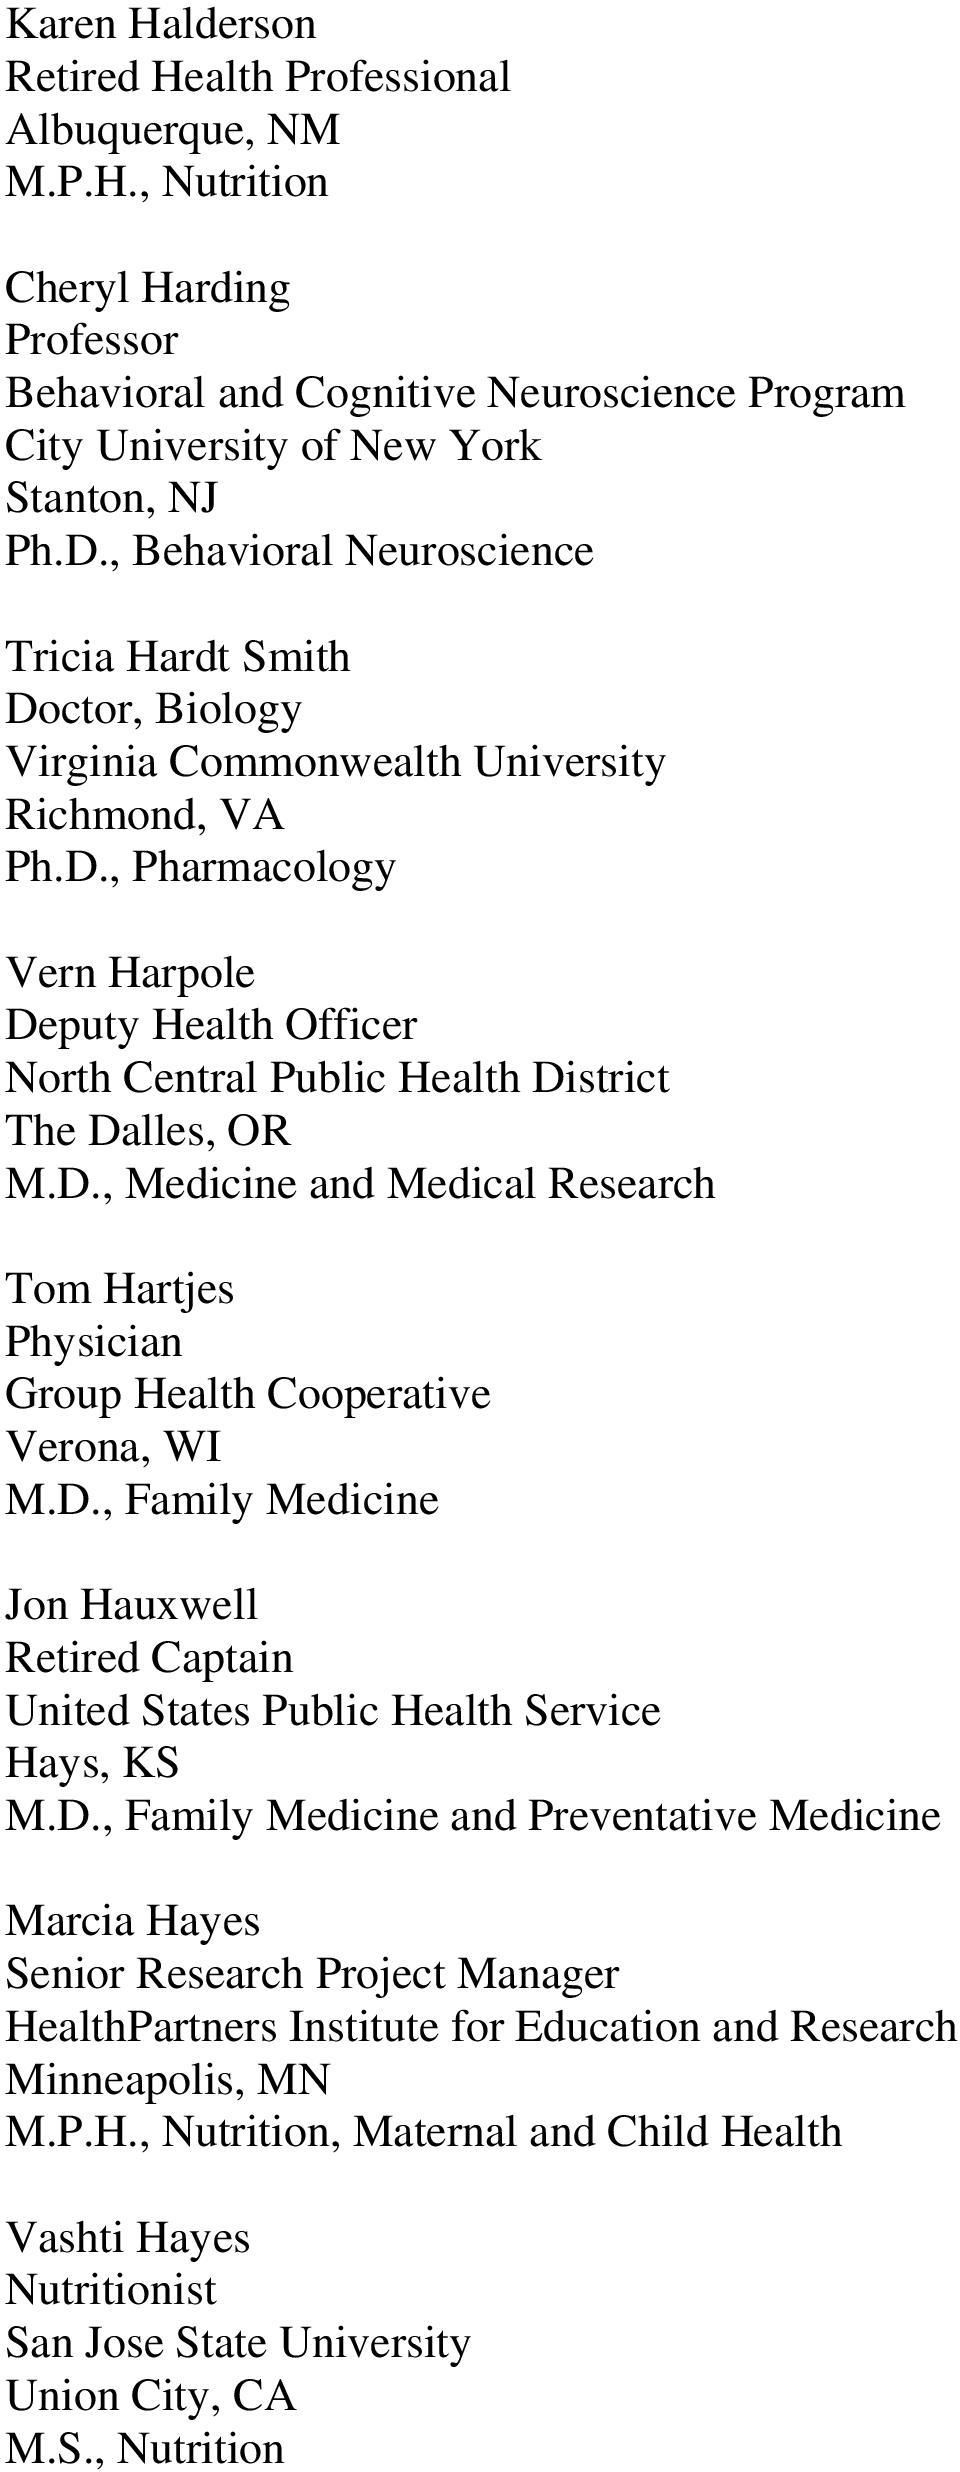 D., Medicine and Medical Research Tom Hartjes Group Health Cooperative Verona, WI M.D., Family Medicine Jon Hauxwell Retired Captain United States Public Health Service Hays, KS M.D., Family Medicine and Preventative Medicine Marcia Hayes Senior Research Project Manager HealthPartners Institute for Education and Research Minneapolis, MN M.